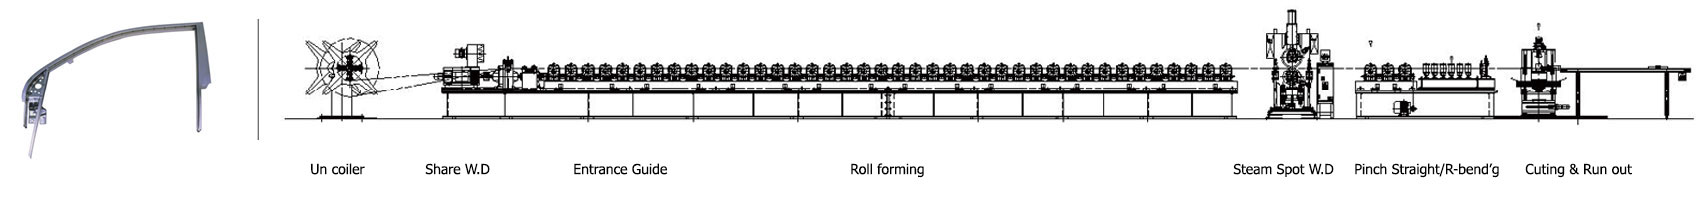 roll forming line layout -1